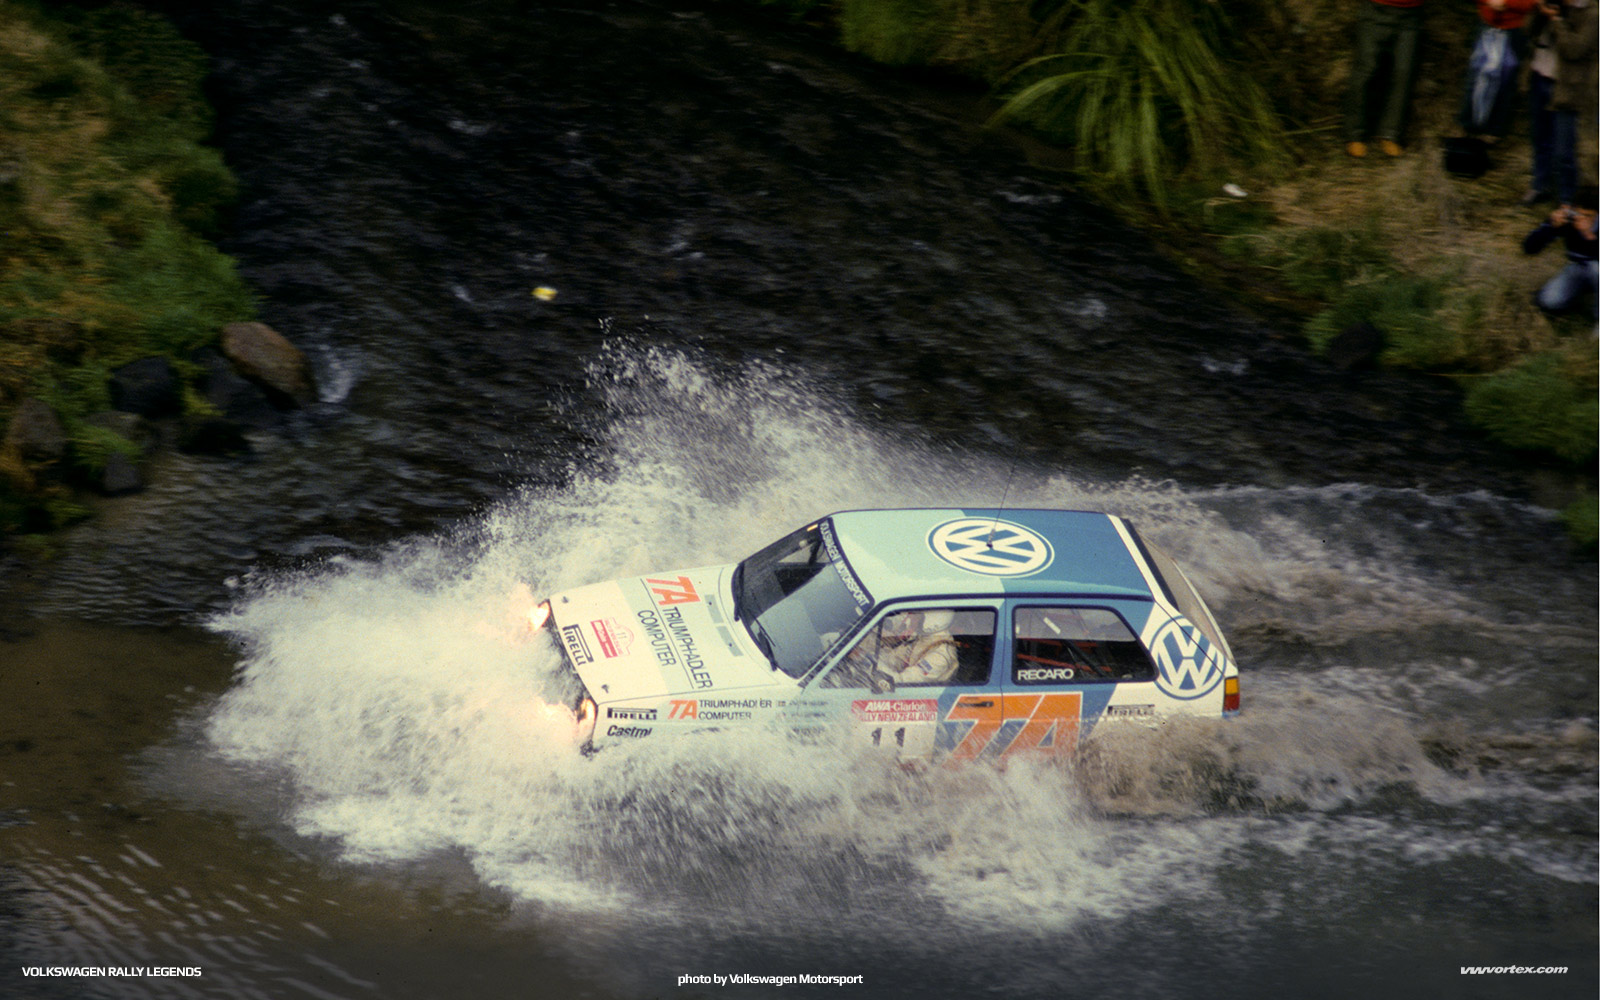 volkswagen-rally-legends-383